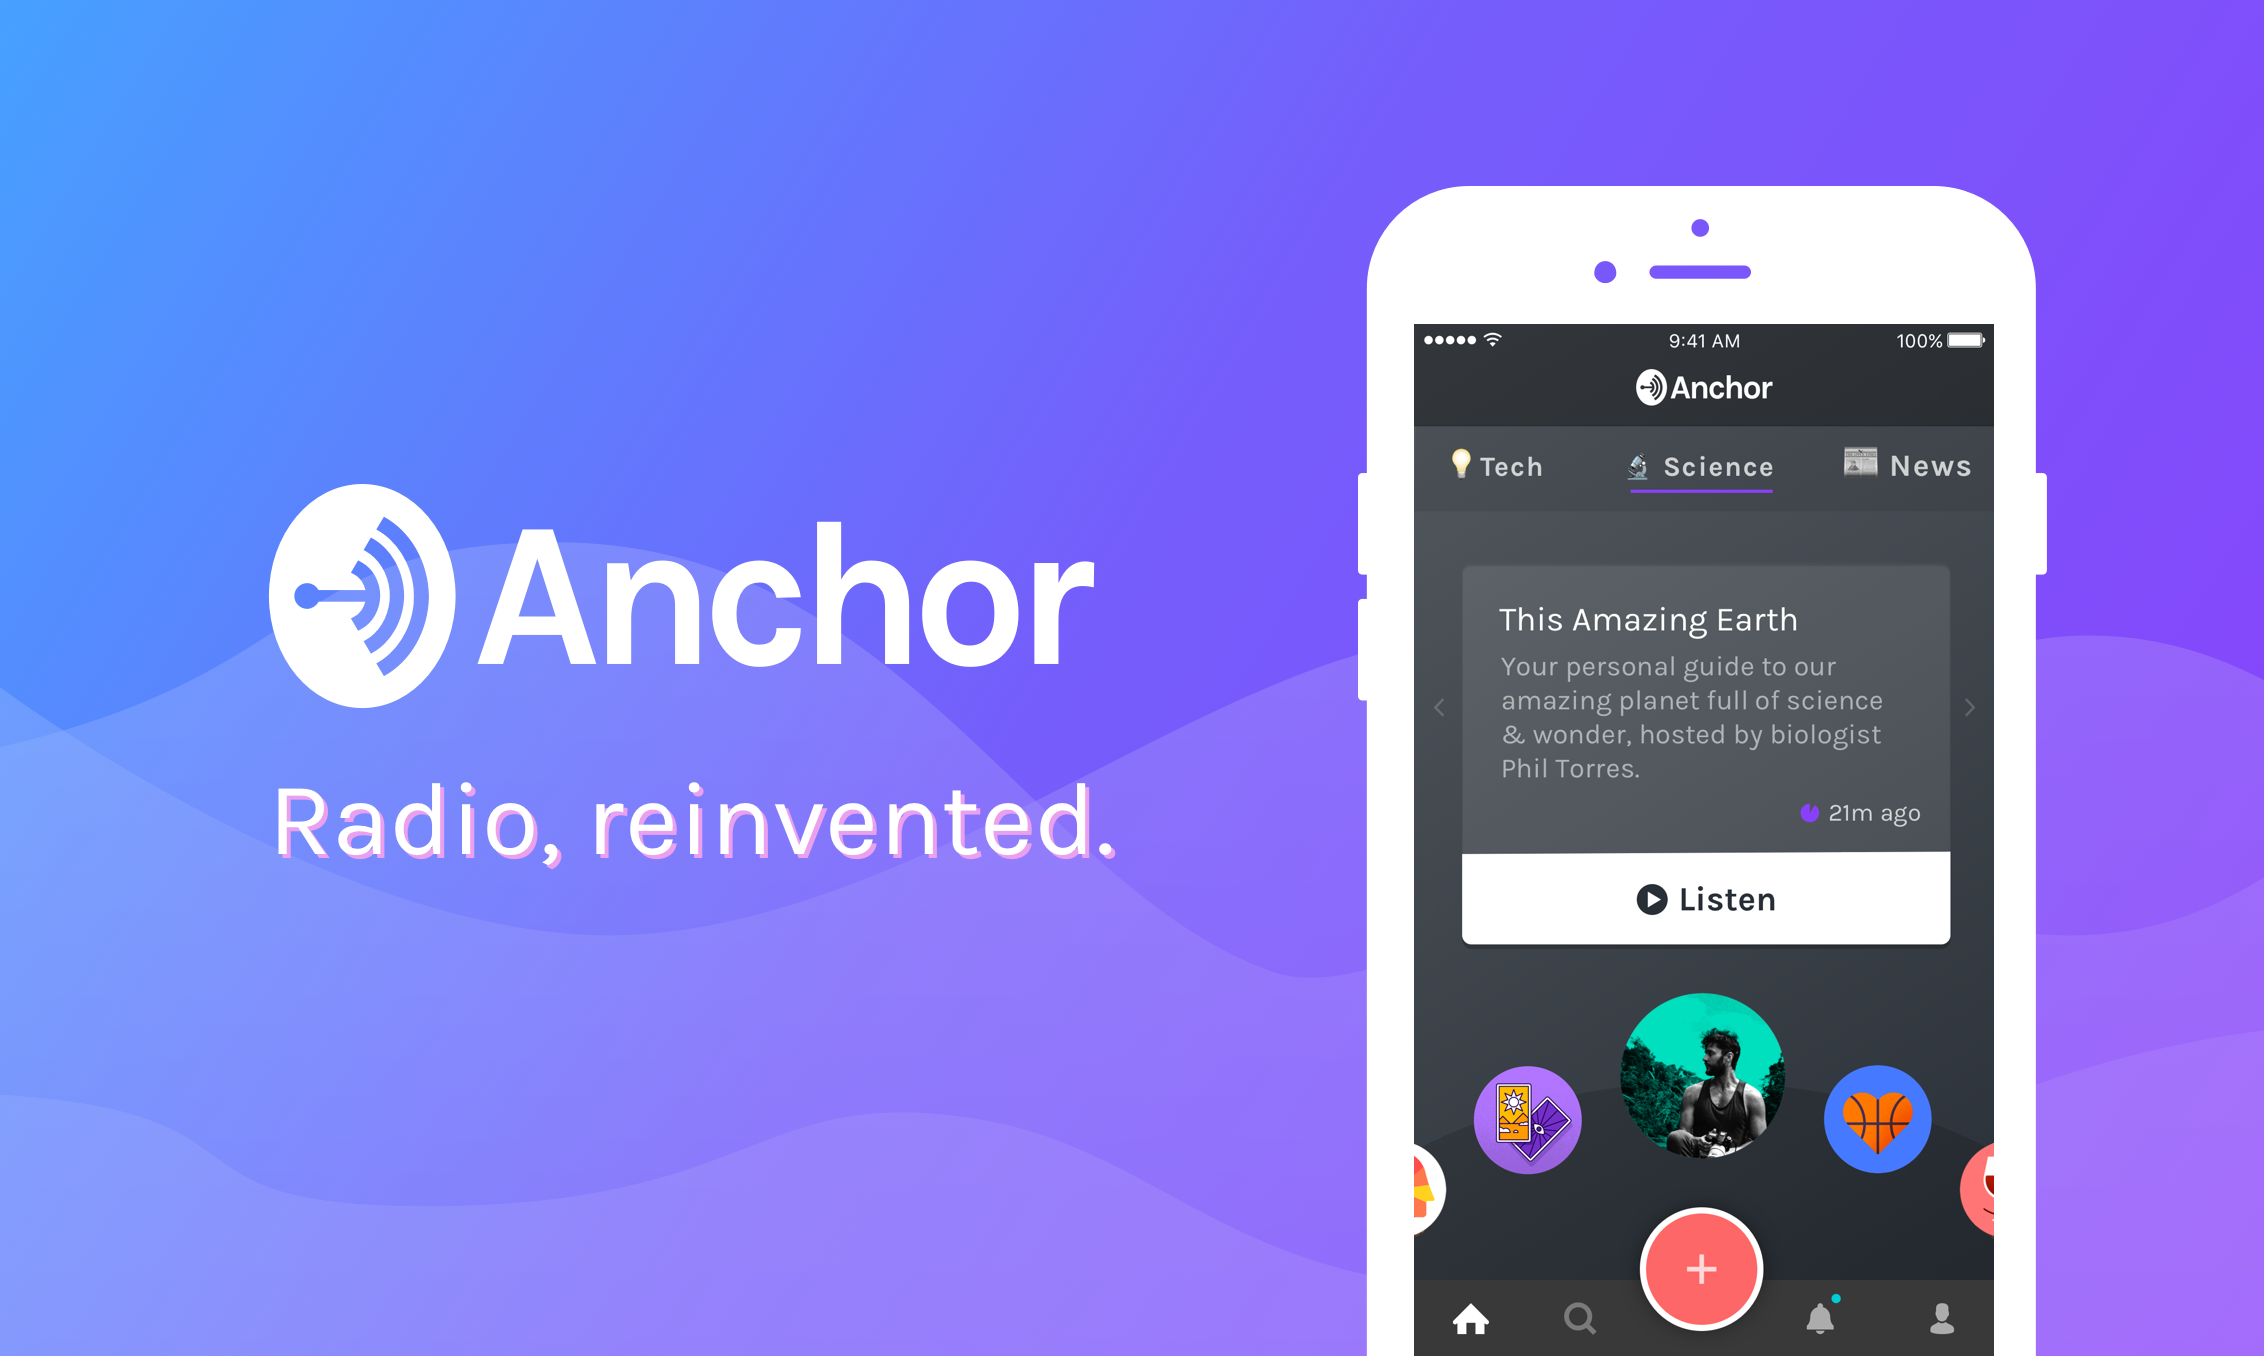 Who Let Me Adult – Now on Anchor.fm – Radio, reinvented